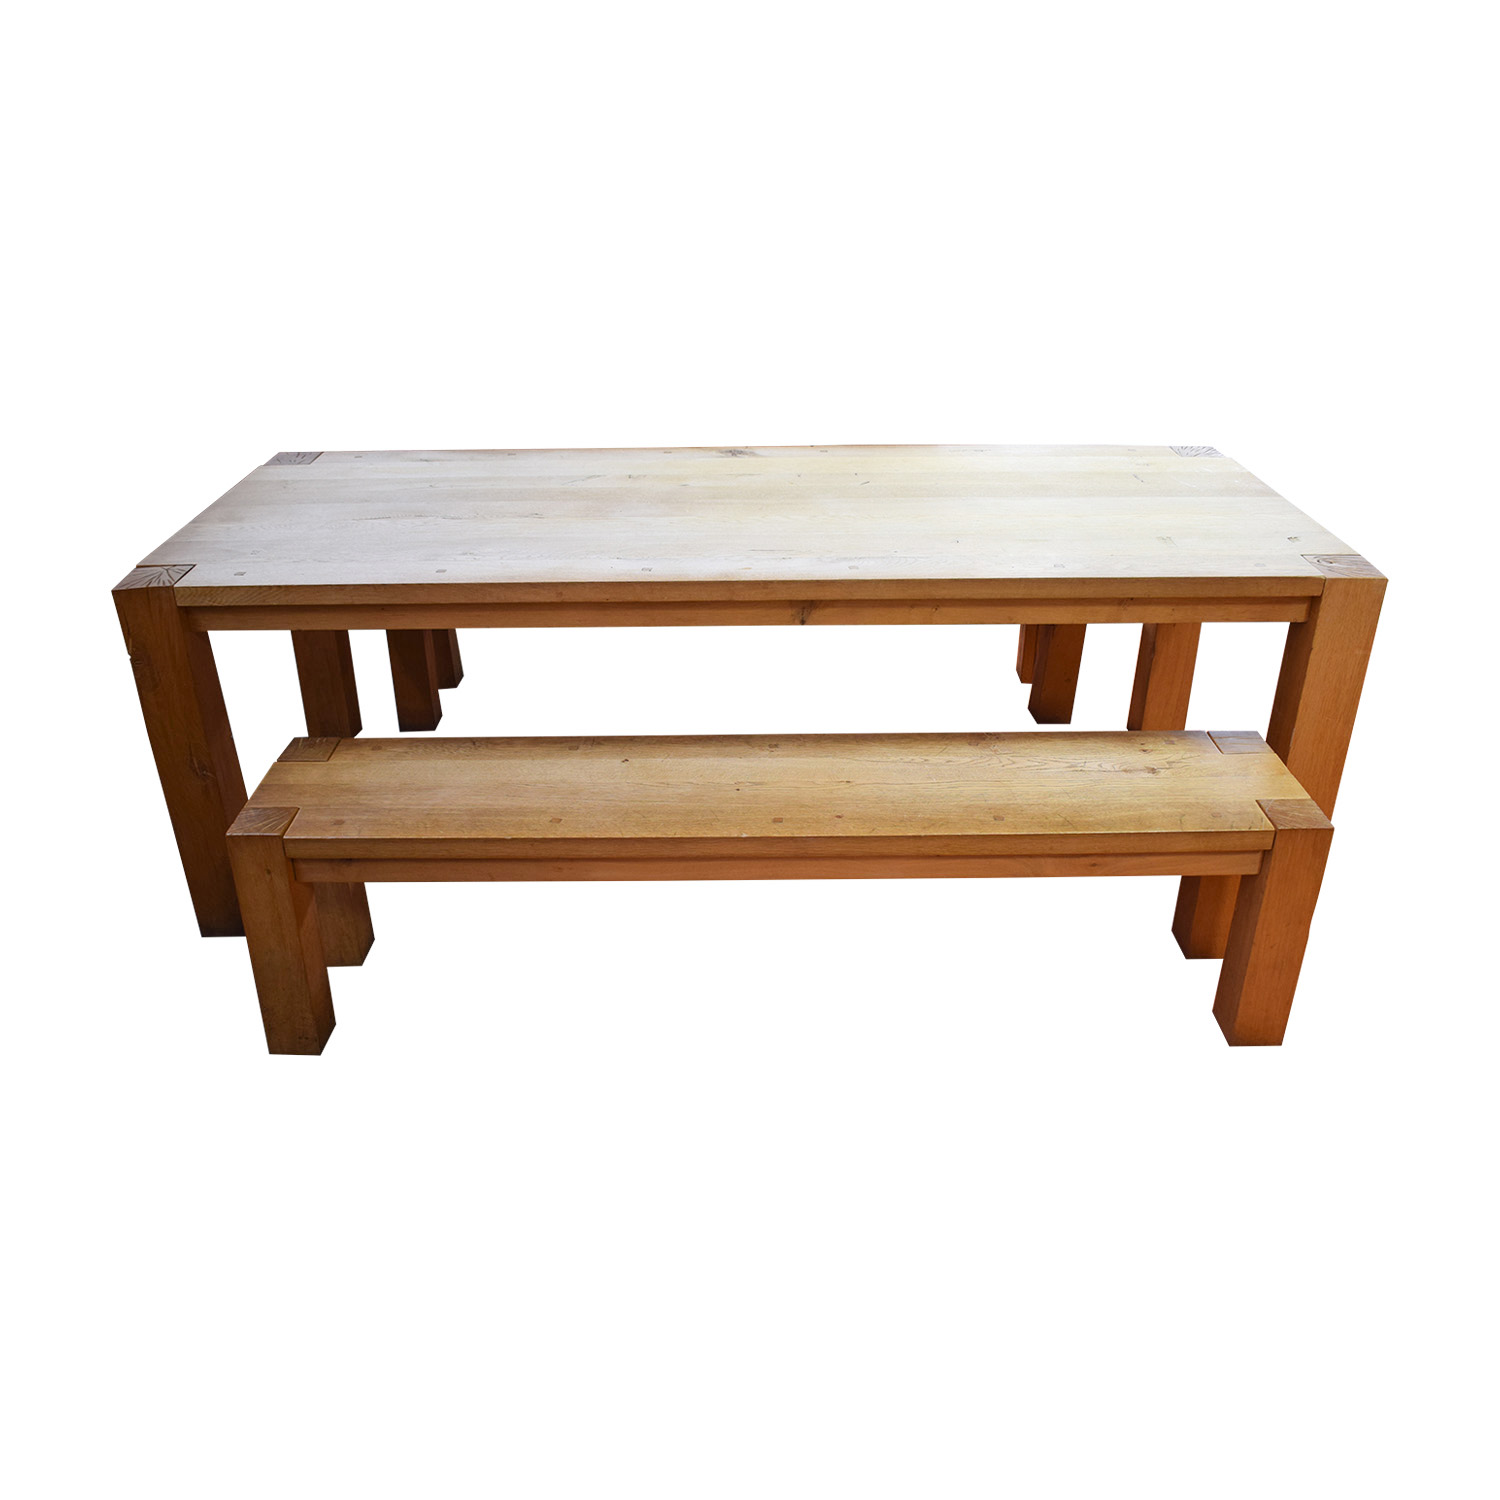 Crate & Barrel Crate & Barrel Big Sure Natural Dining Table with Benches wood